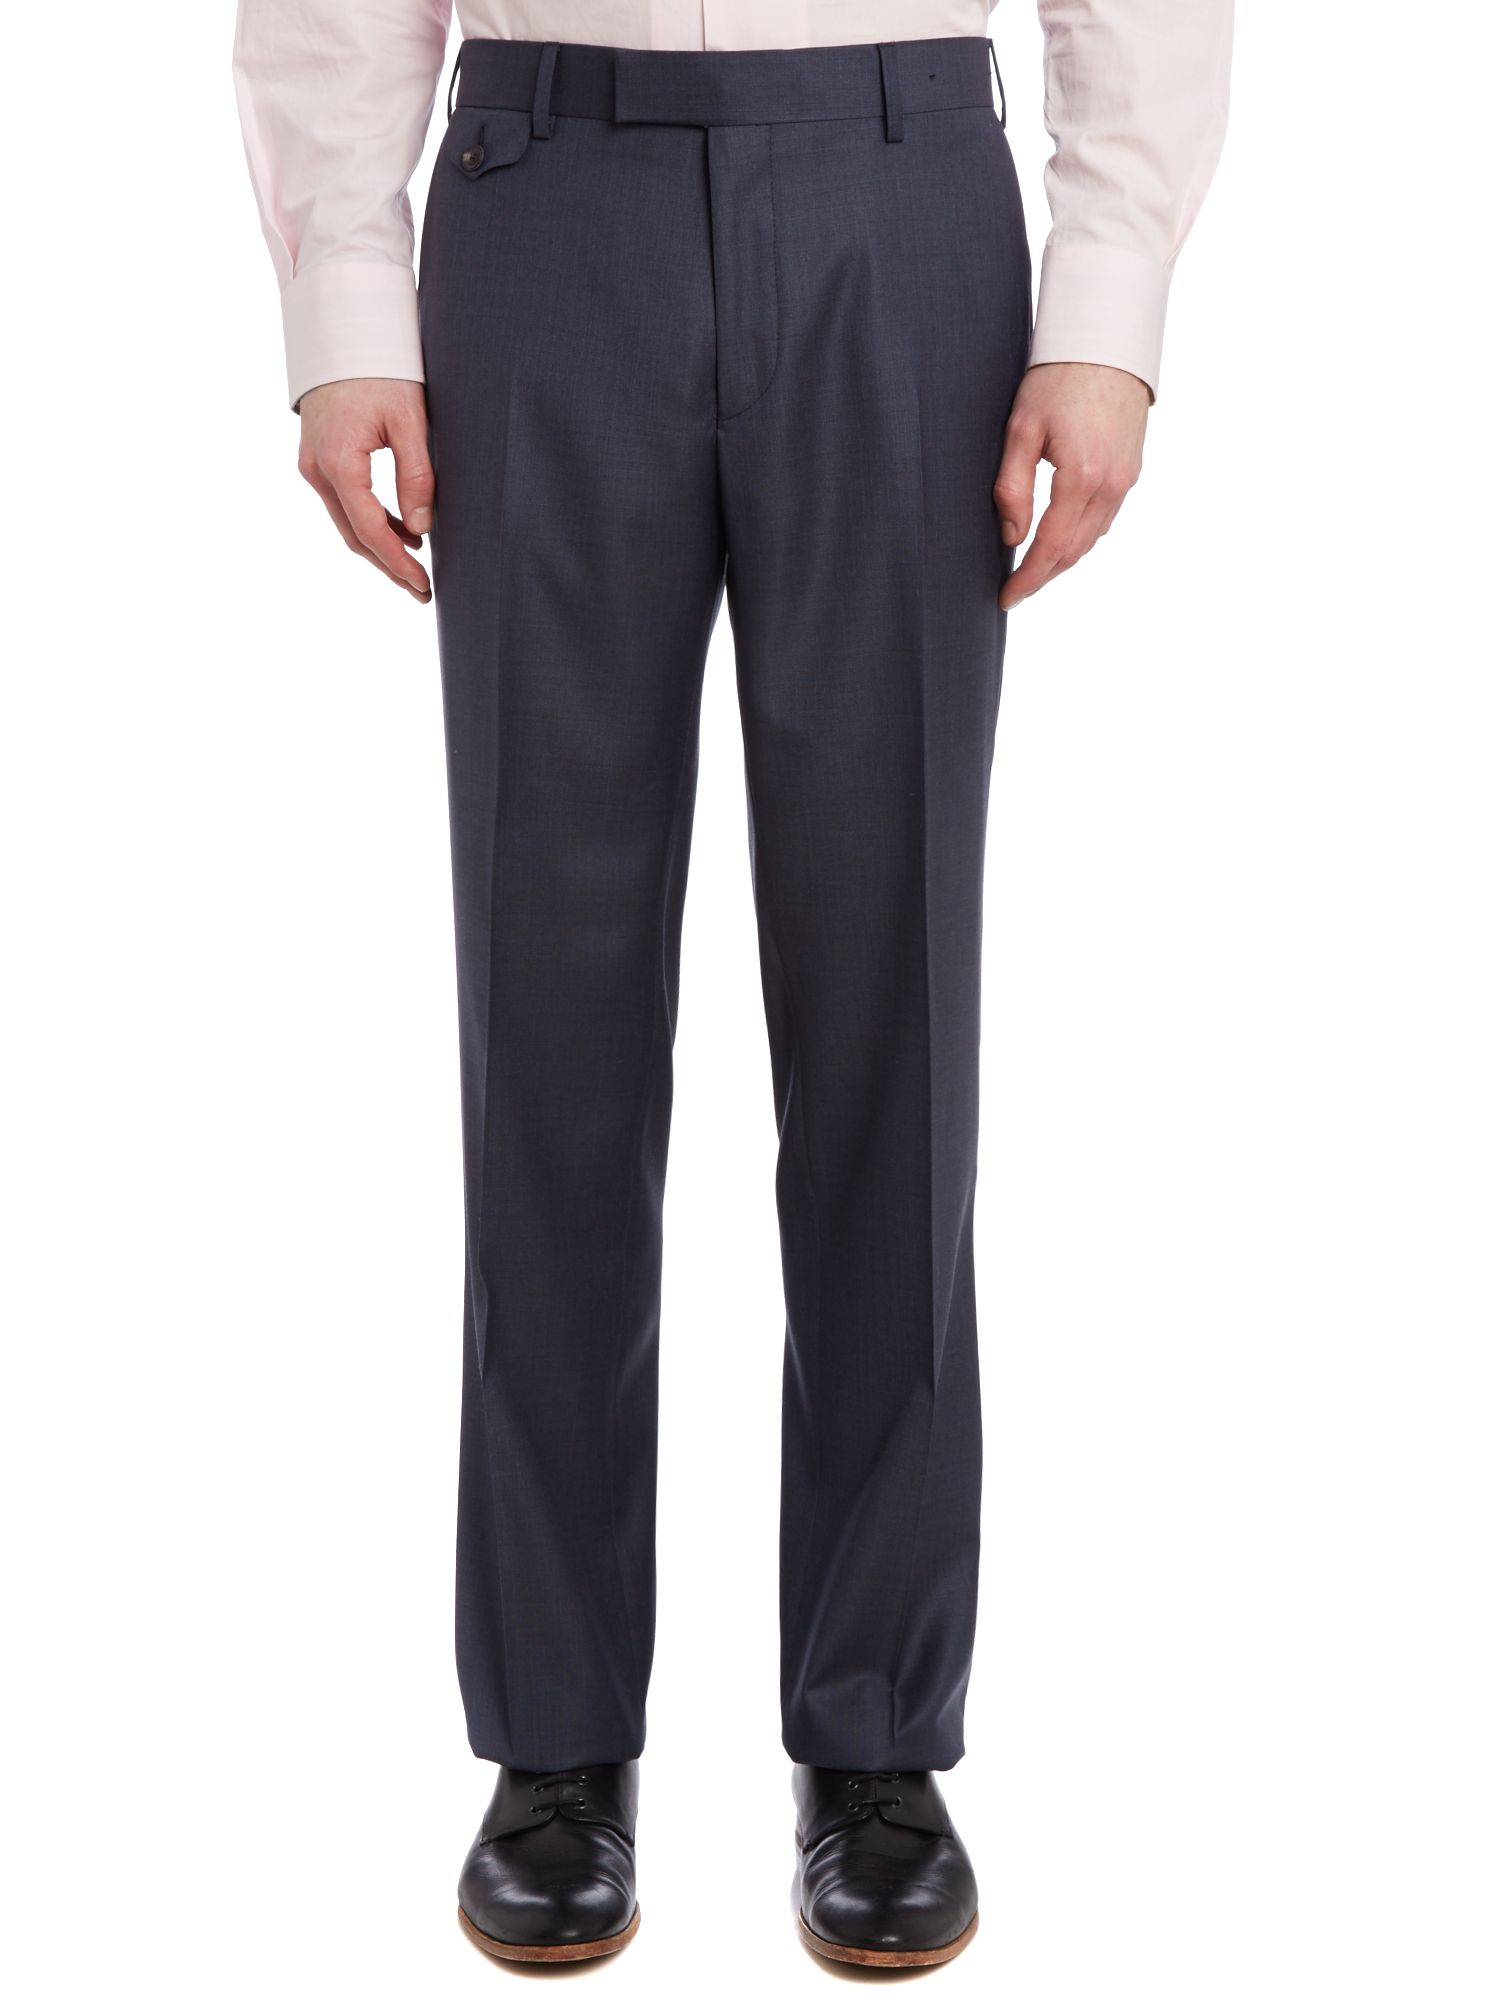 Hawtro sterling regular fit melange suit trouser